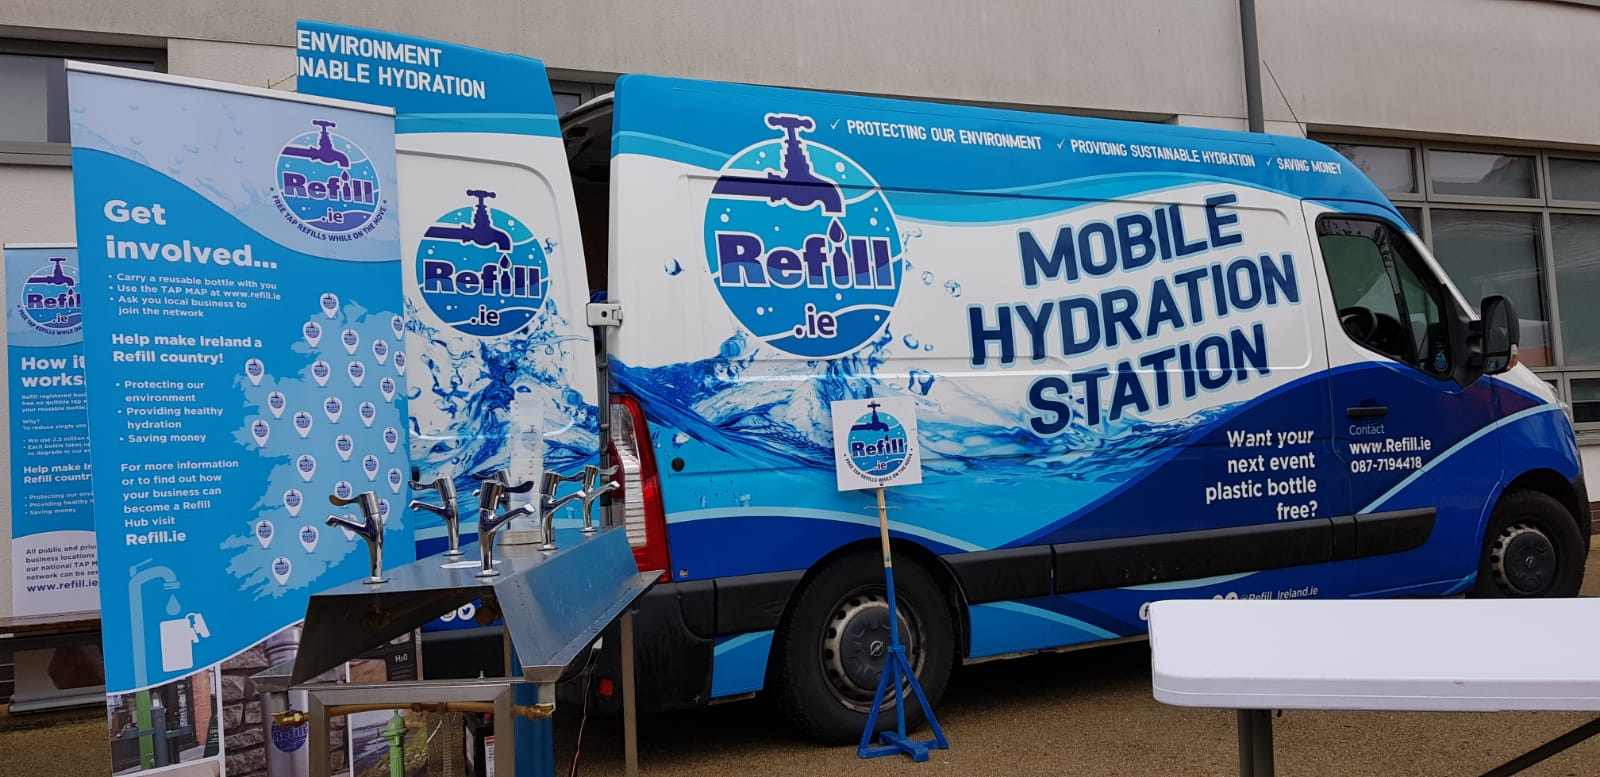 Mobile Hydration Station Van provides water fountains for refilling reusable water bottles